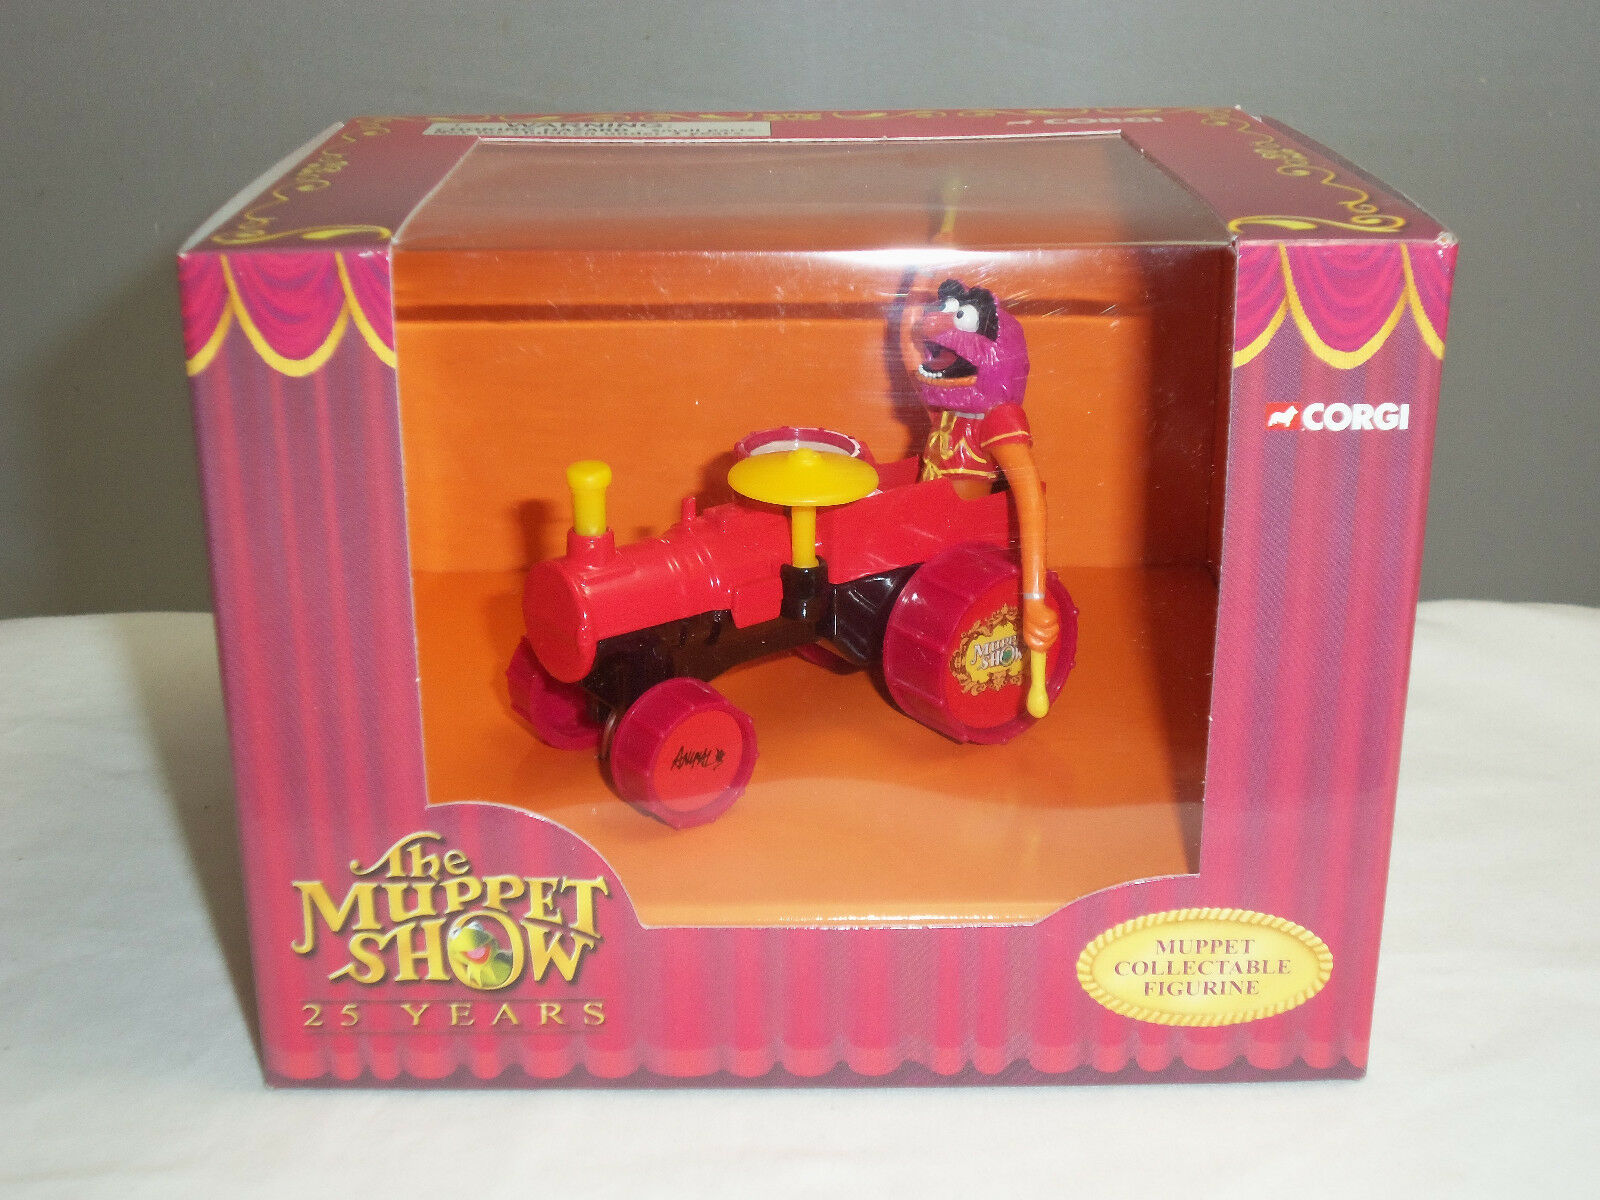 CORGI CC06604 JIM HENSON MUPPETS ANIMAL FIGURE IN DIECAST MODEL RED STEAM ENGINE